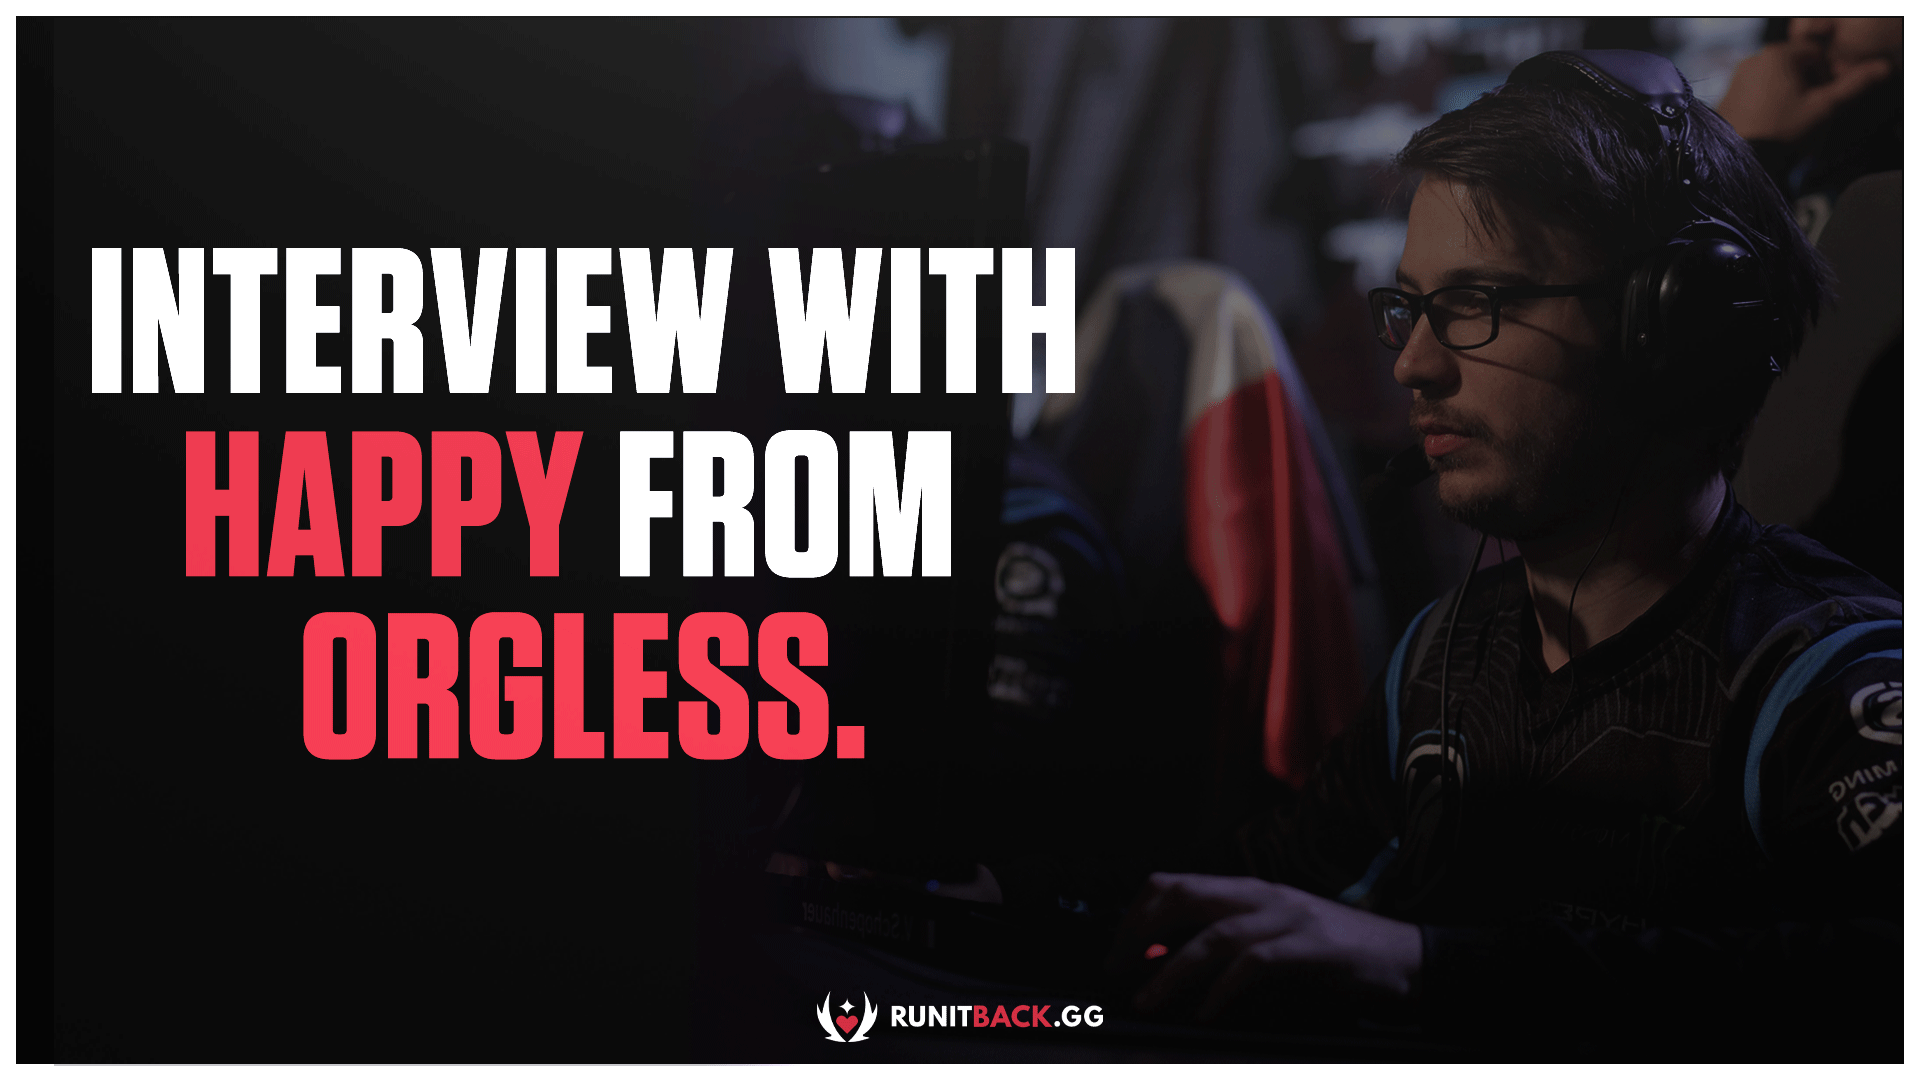 OrglessV's Happy on feelings post G2 match and getting signed by an organization